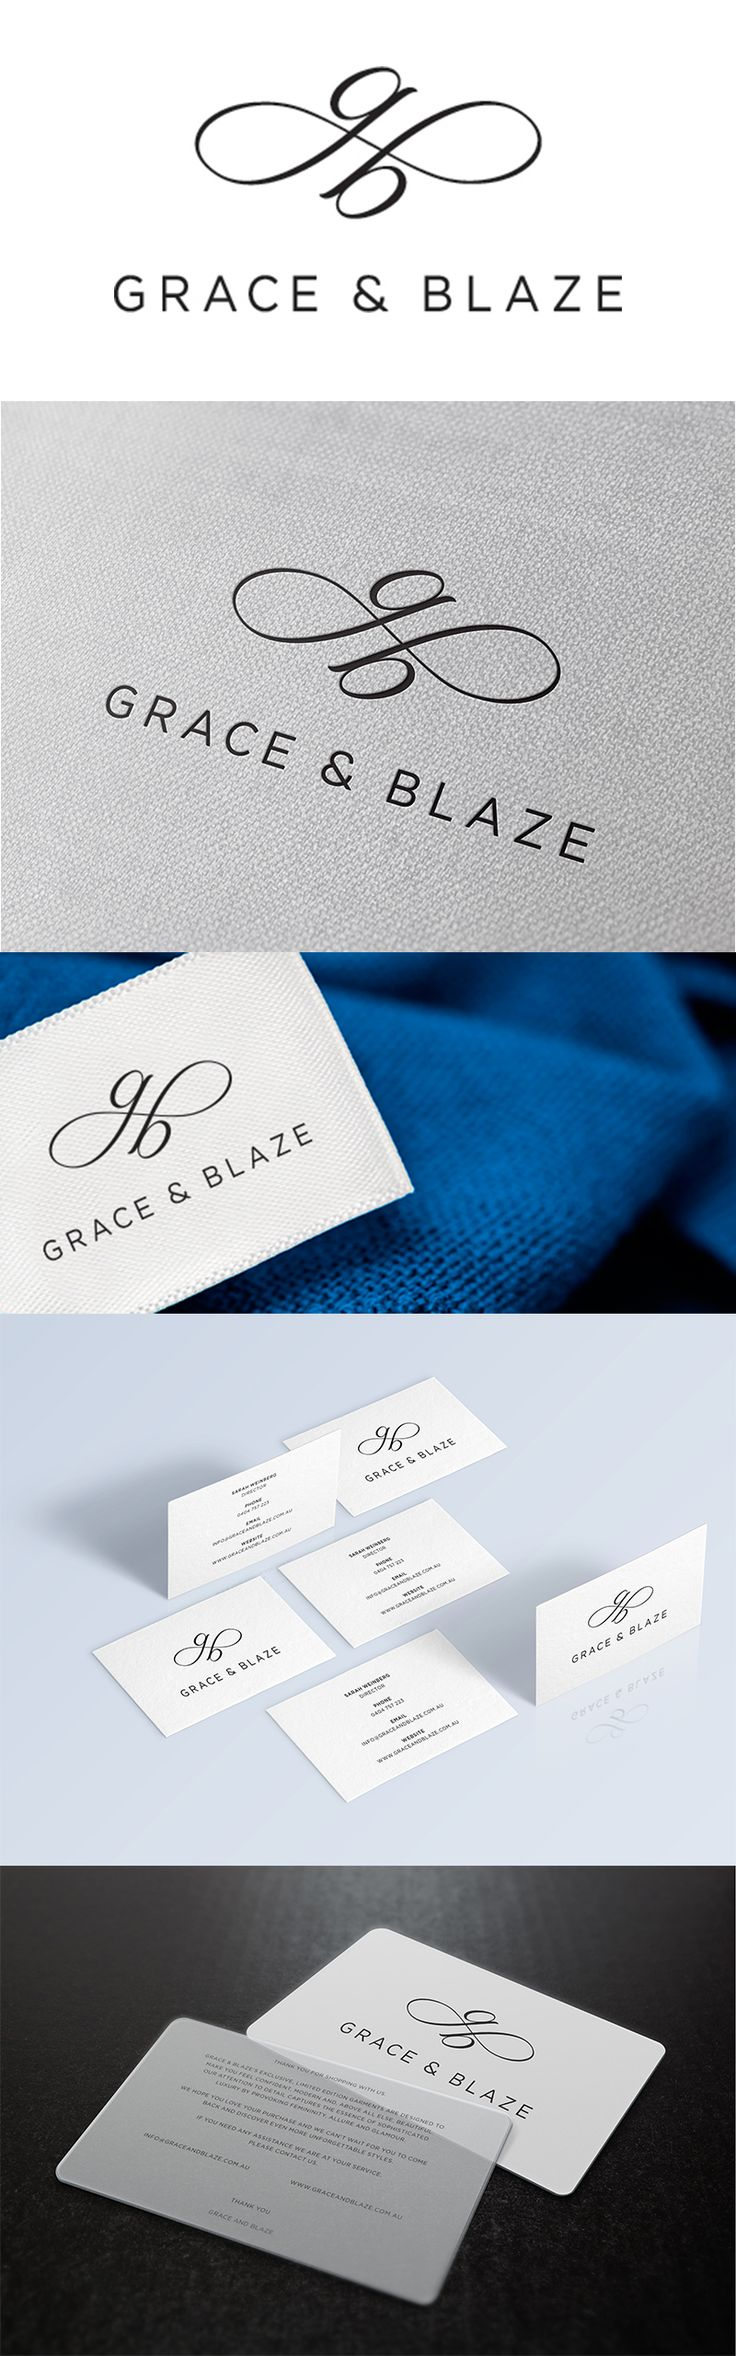 Grace & Blaze is one of Sydney's newest fashion labels. Made Agency created an elegant and unique brand identity that reflects the femininity and glamour of the brand. graphic graphicdesign logo inspiration madeagency sydney fashion couture identity bran http://jrstudioweb.com/diseno-grafico/diseno-de-logotipos/